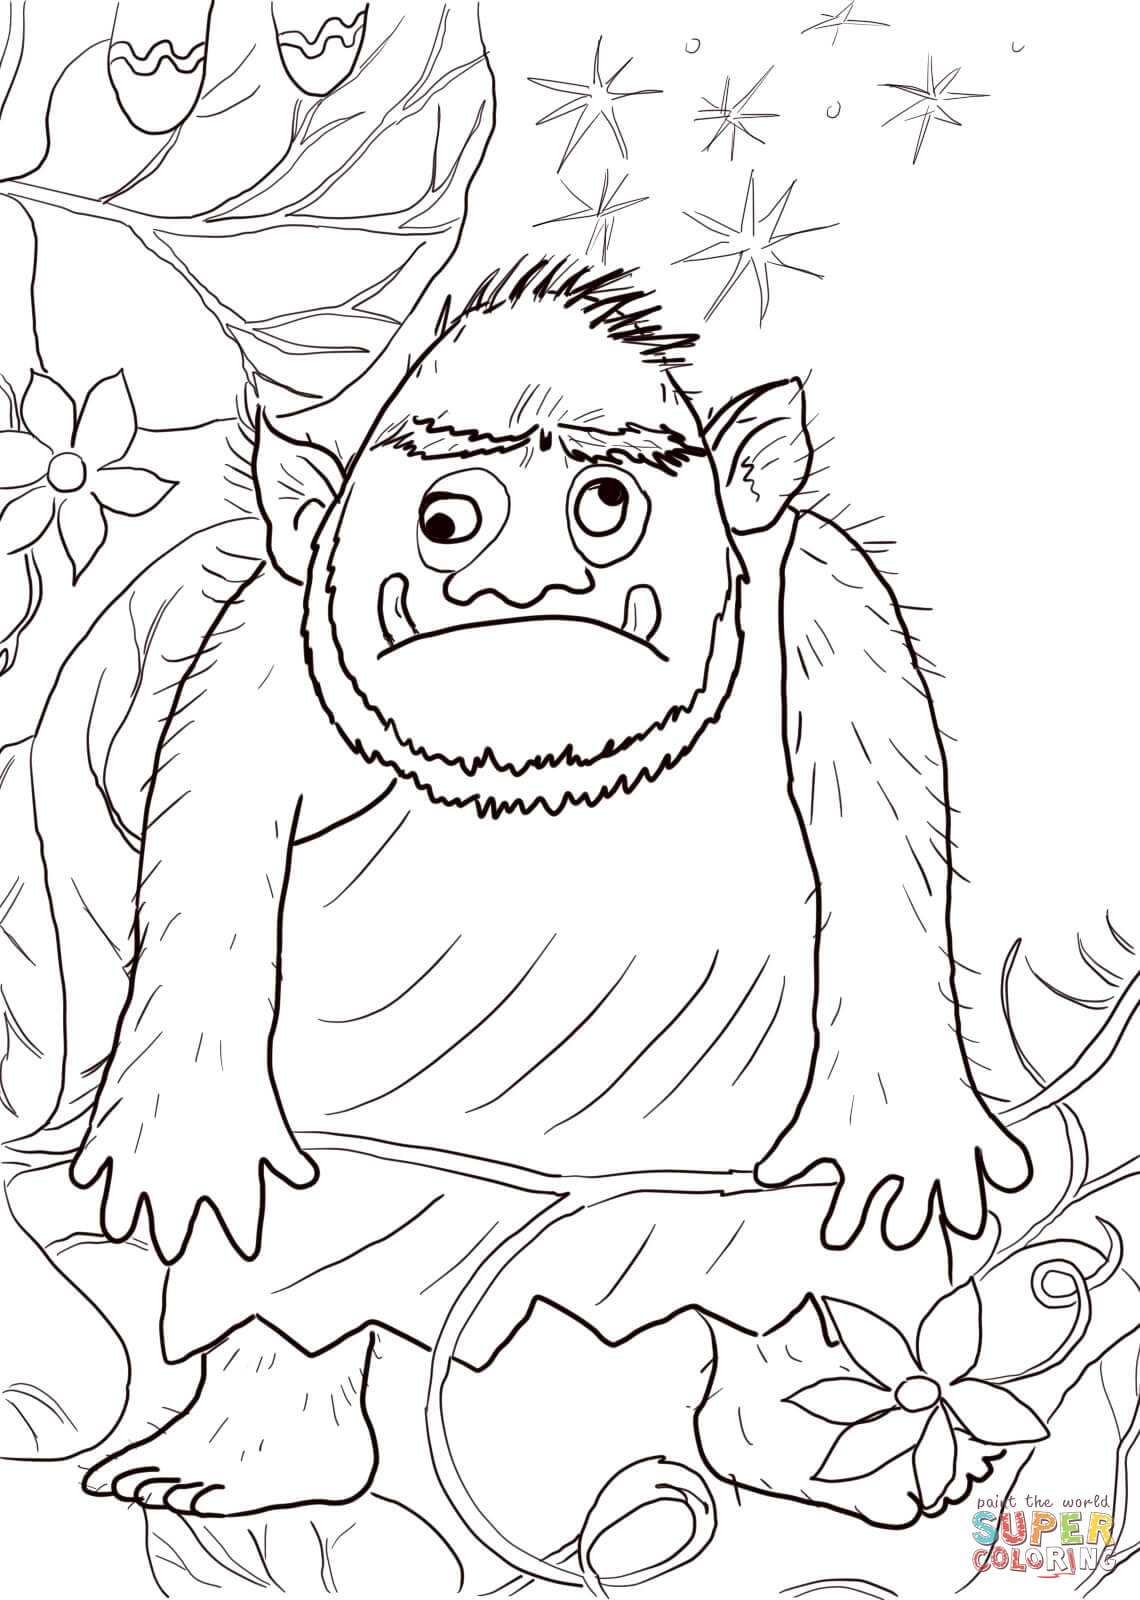 1140x1600 Giant From Jack And The Beanstalk Coloring Page Free Printable